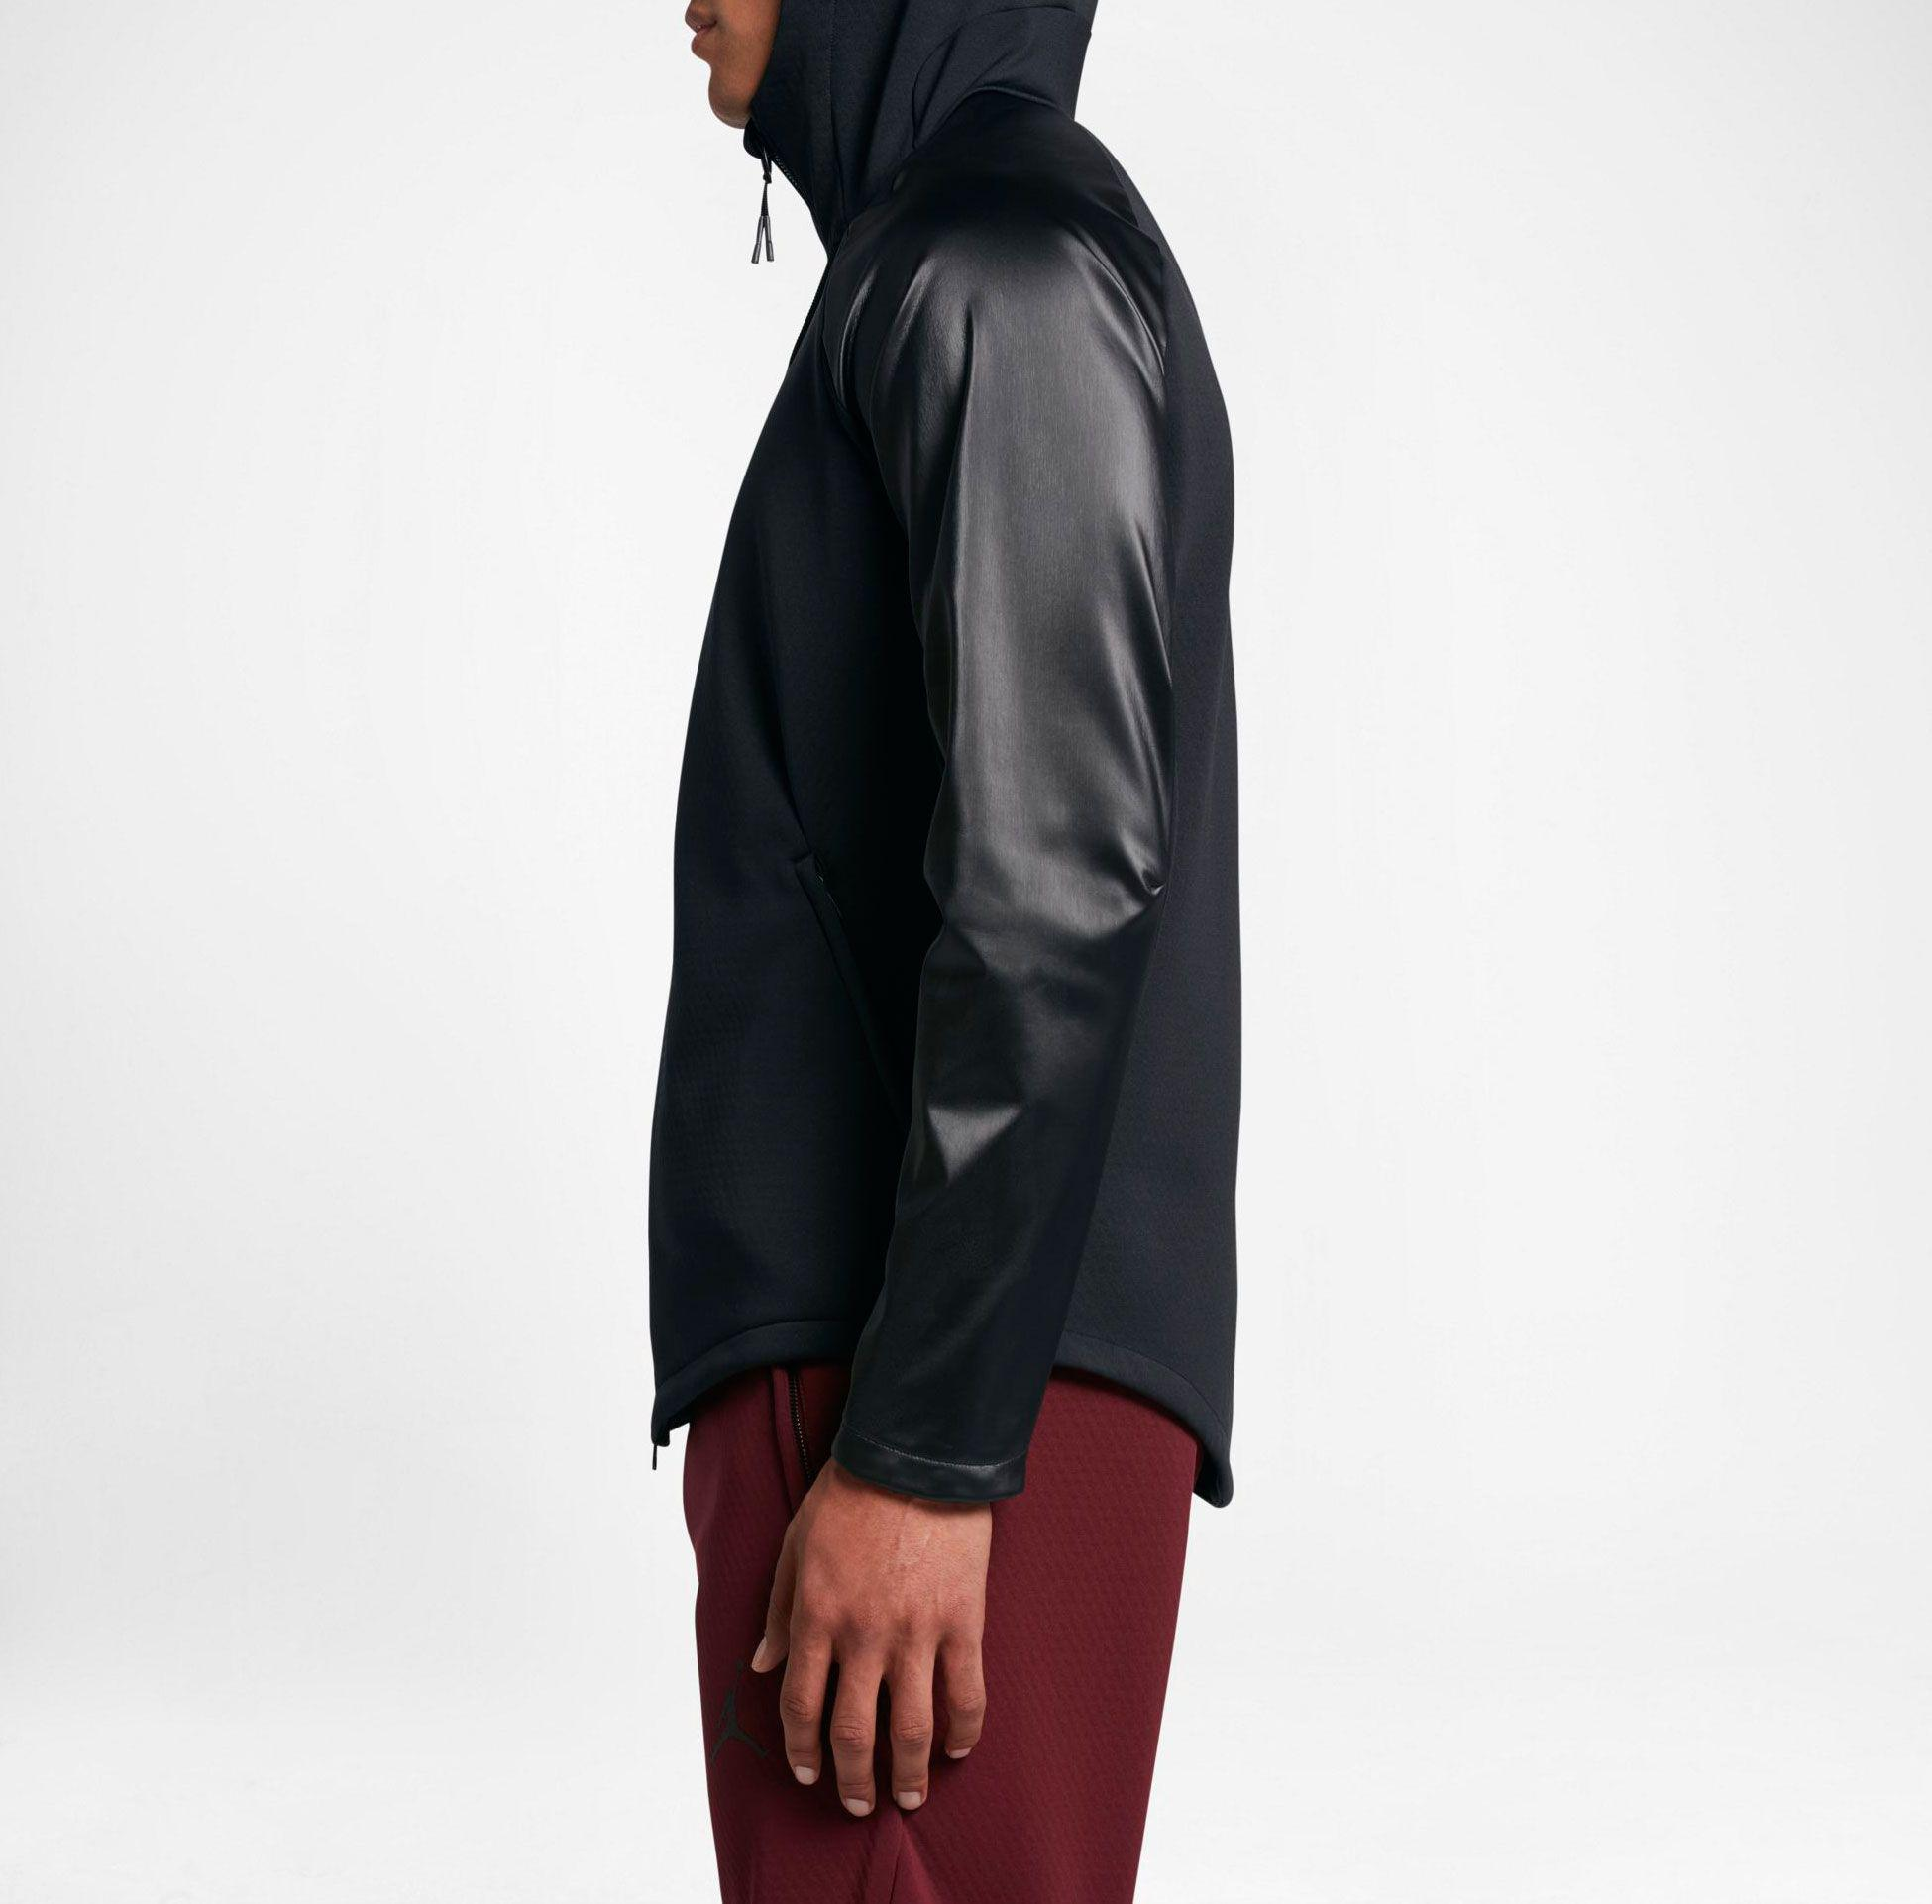 02d4a6e184 Nike Nike 360 Therma Shield Max Full-zip Hoodie in Black for Men - Lyst